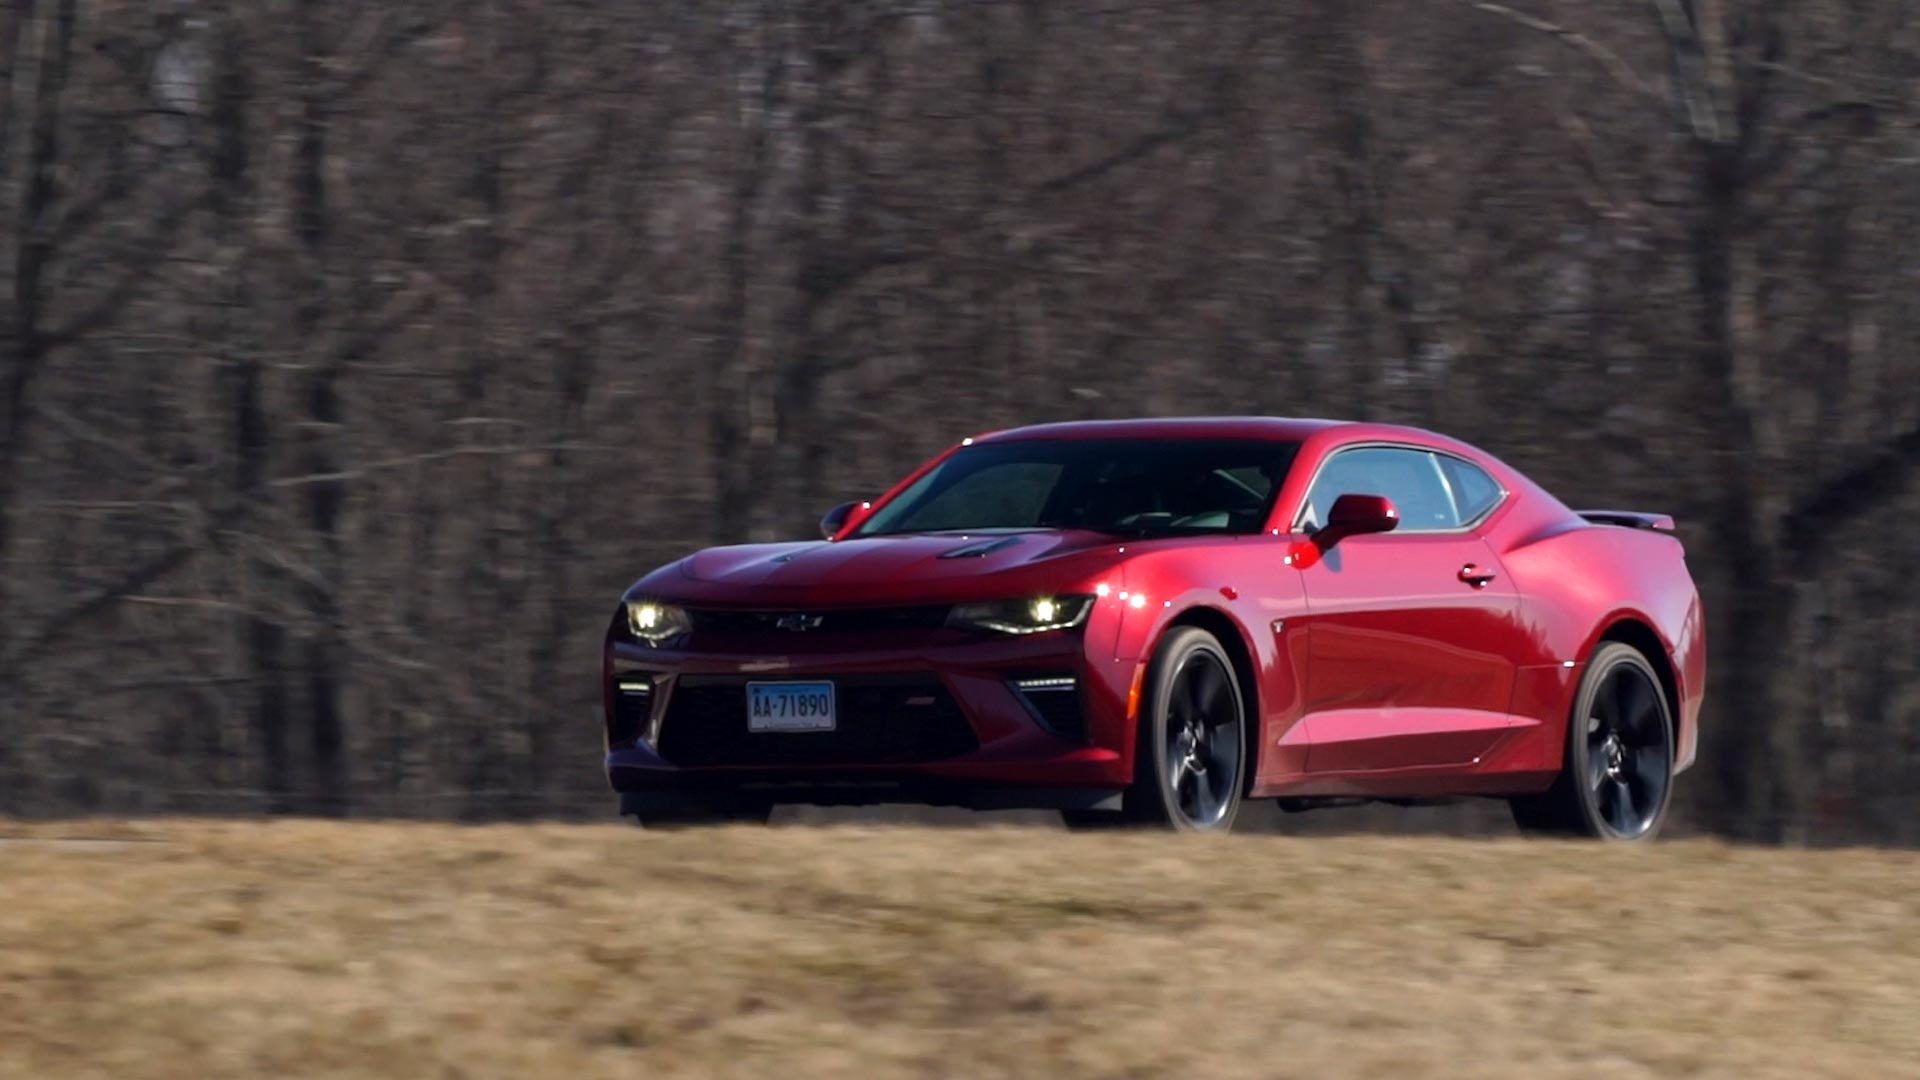 2016 chevrolet camaro review consumer reports something new is in the works voltagebd Gallery